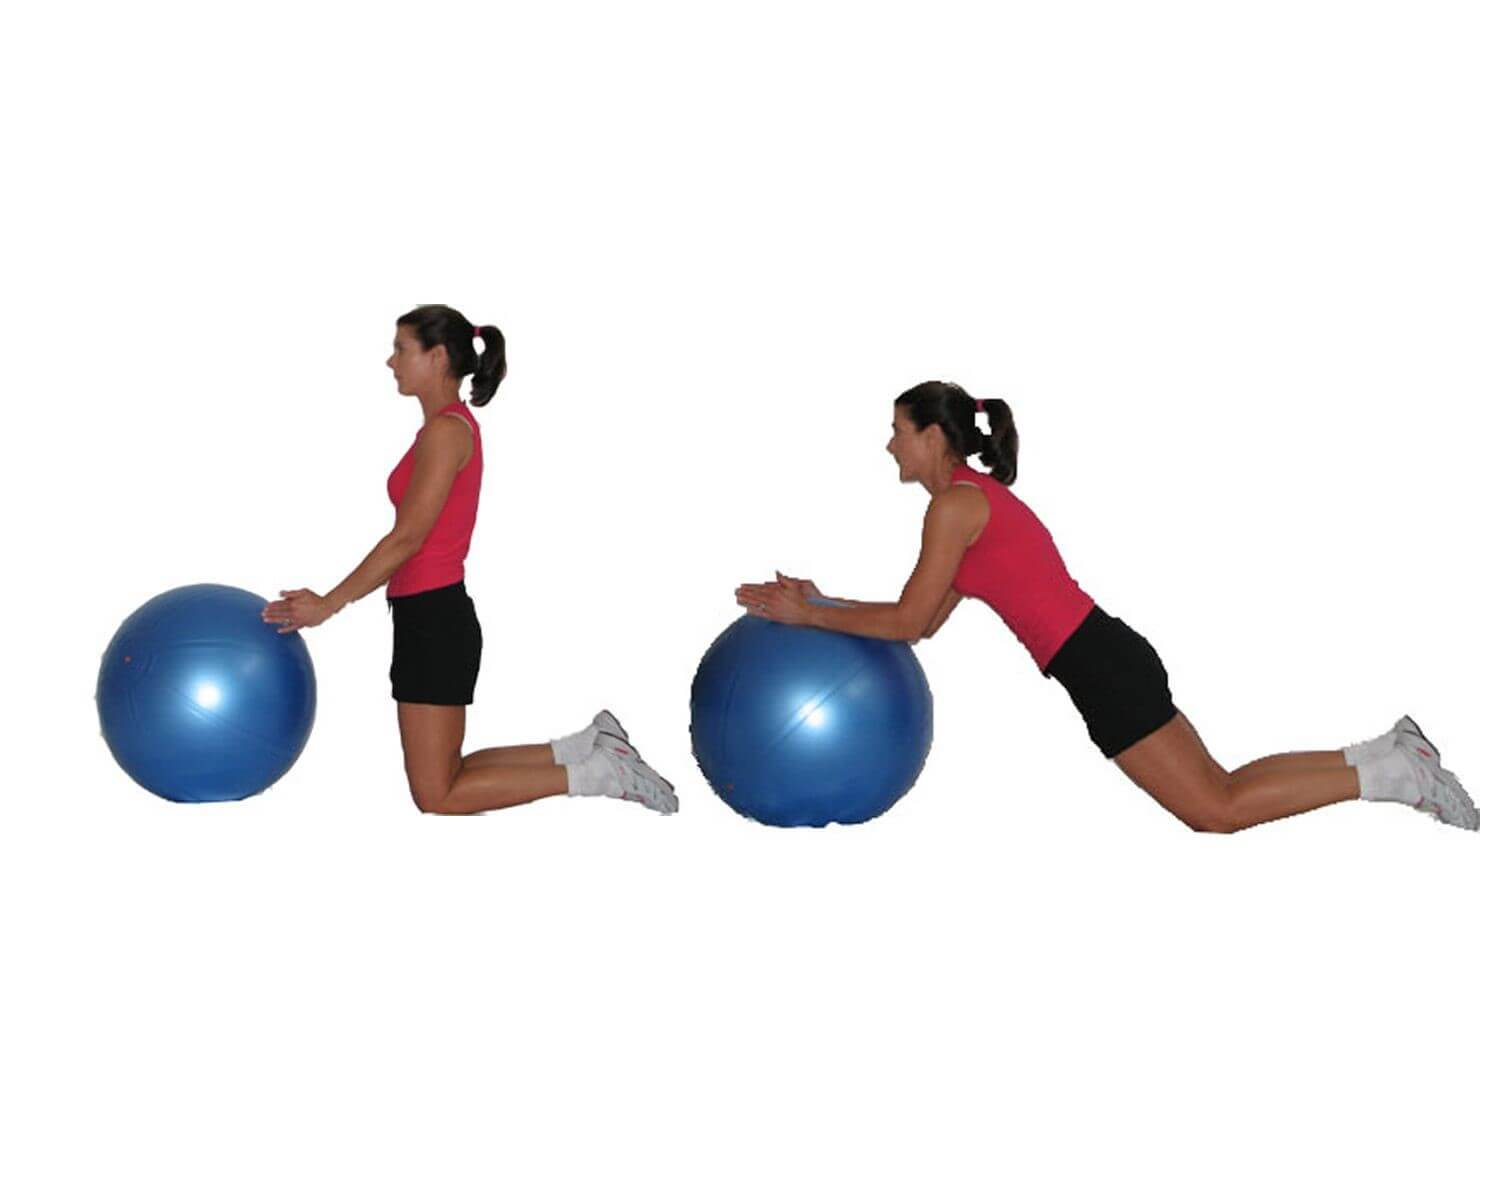 Spine Workout women 2 - Ball Rollouts